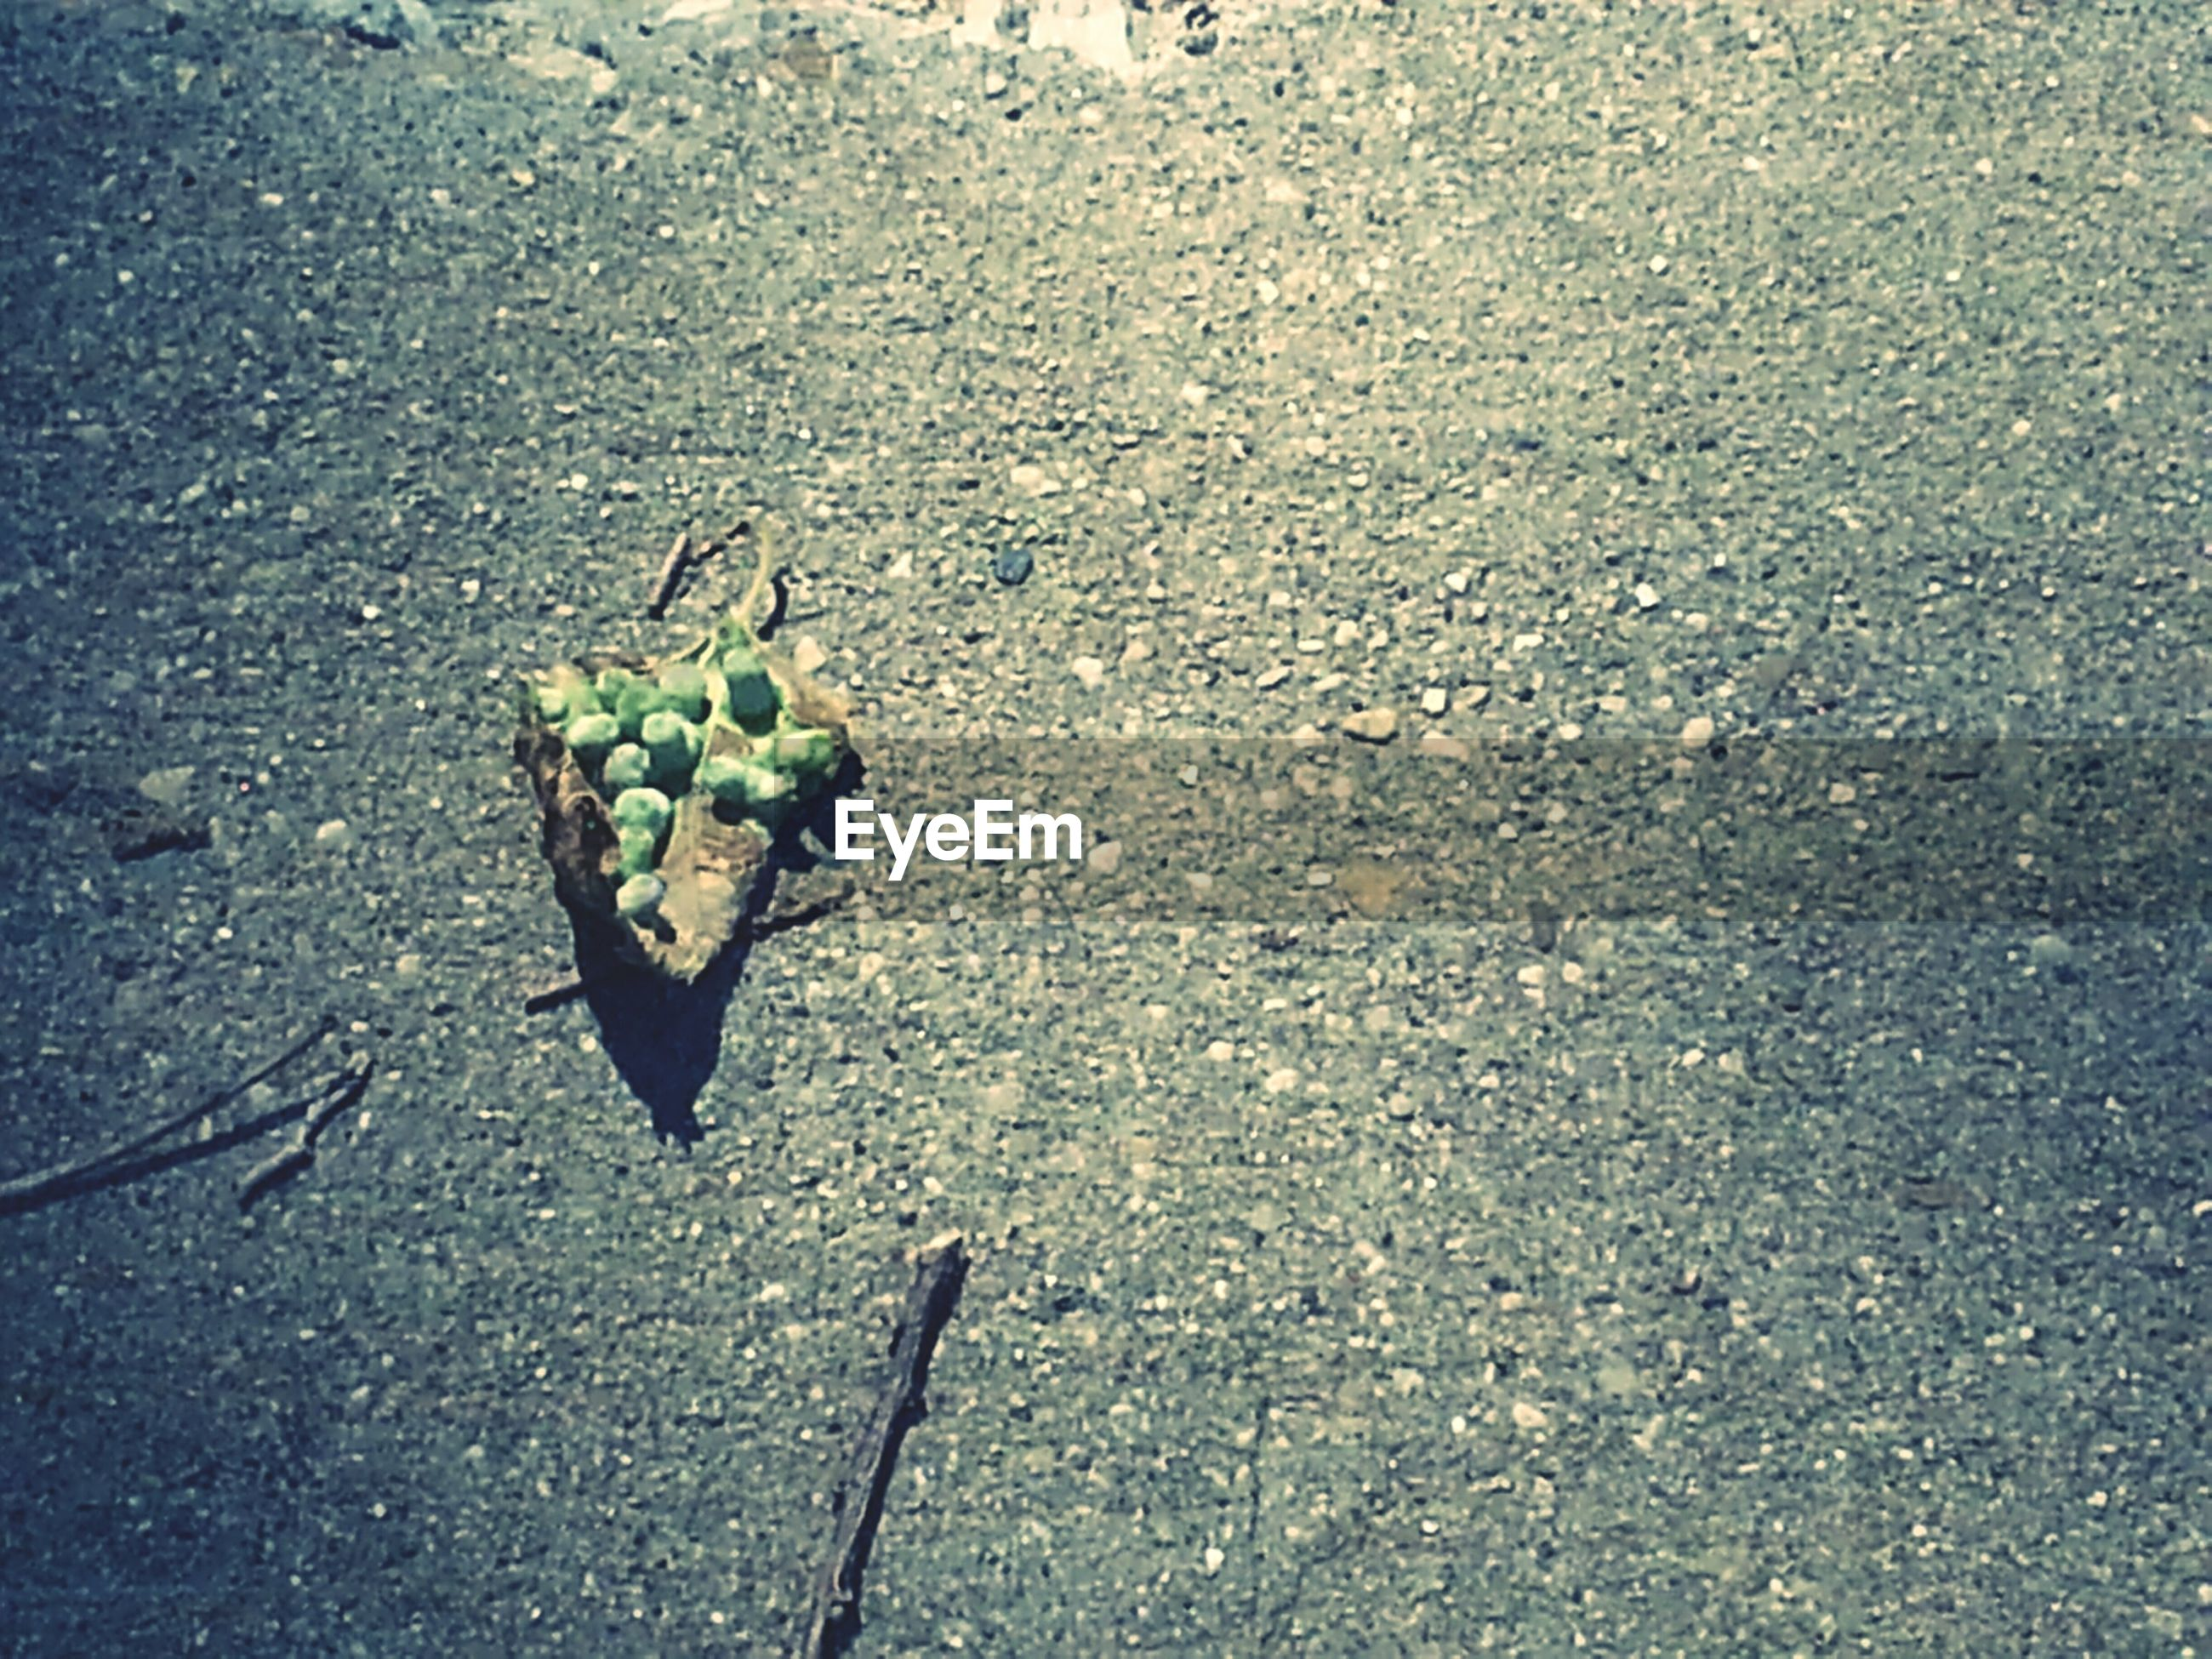 high angle view, leaf, street, asphalt, nature, plant, road, ground, day, outdoors, close-up, no people, growth, dry, textured, sunlight, sidewalk, fragility, shadow, transportation